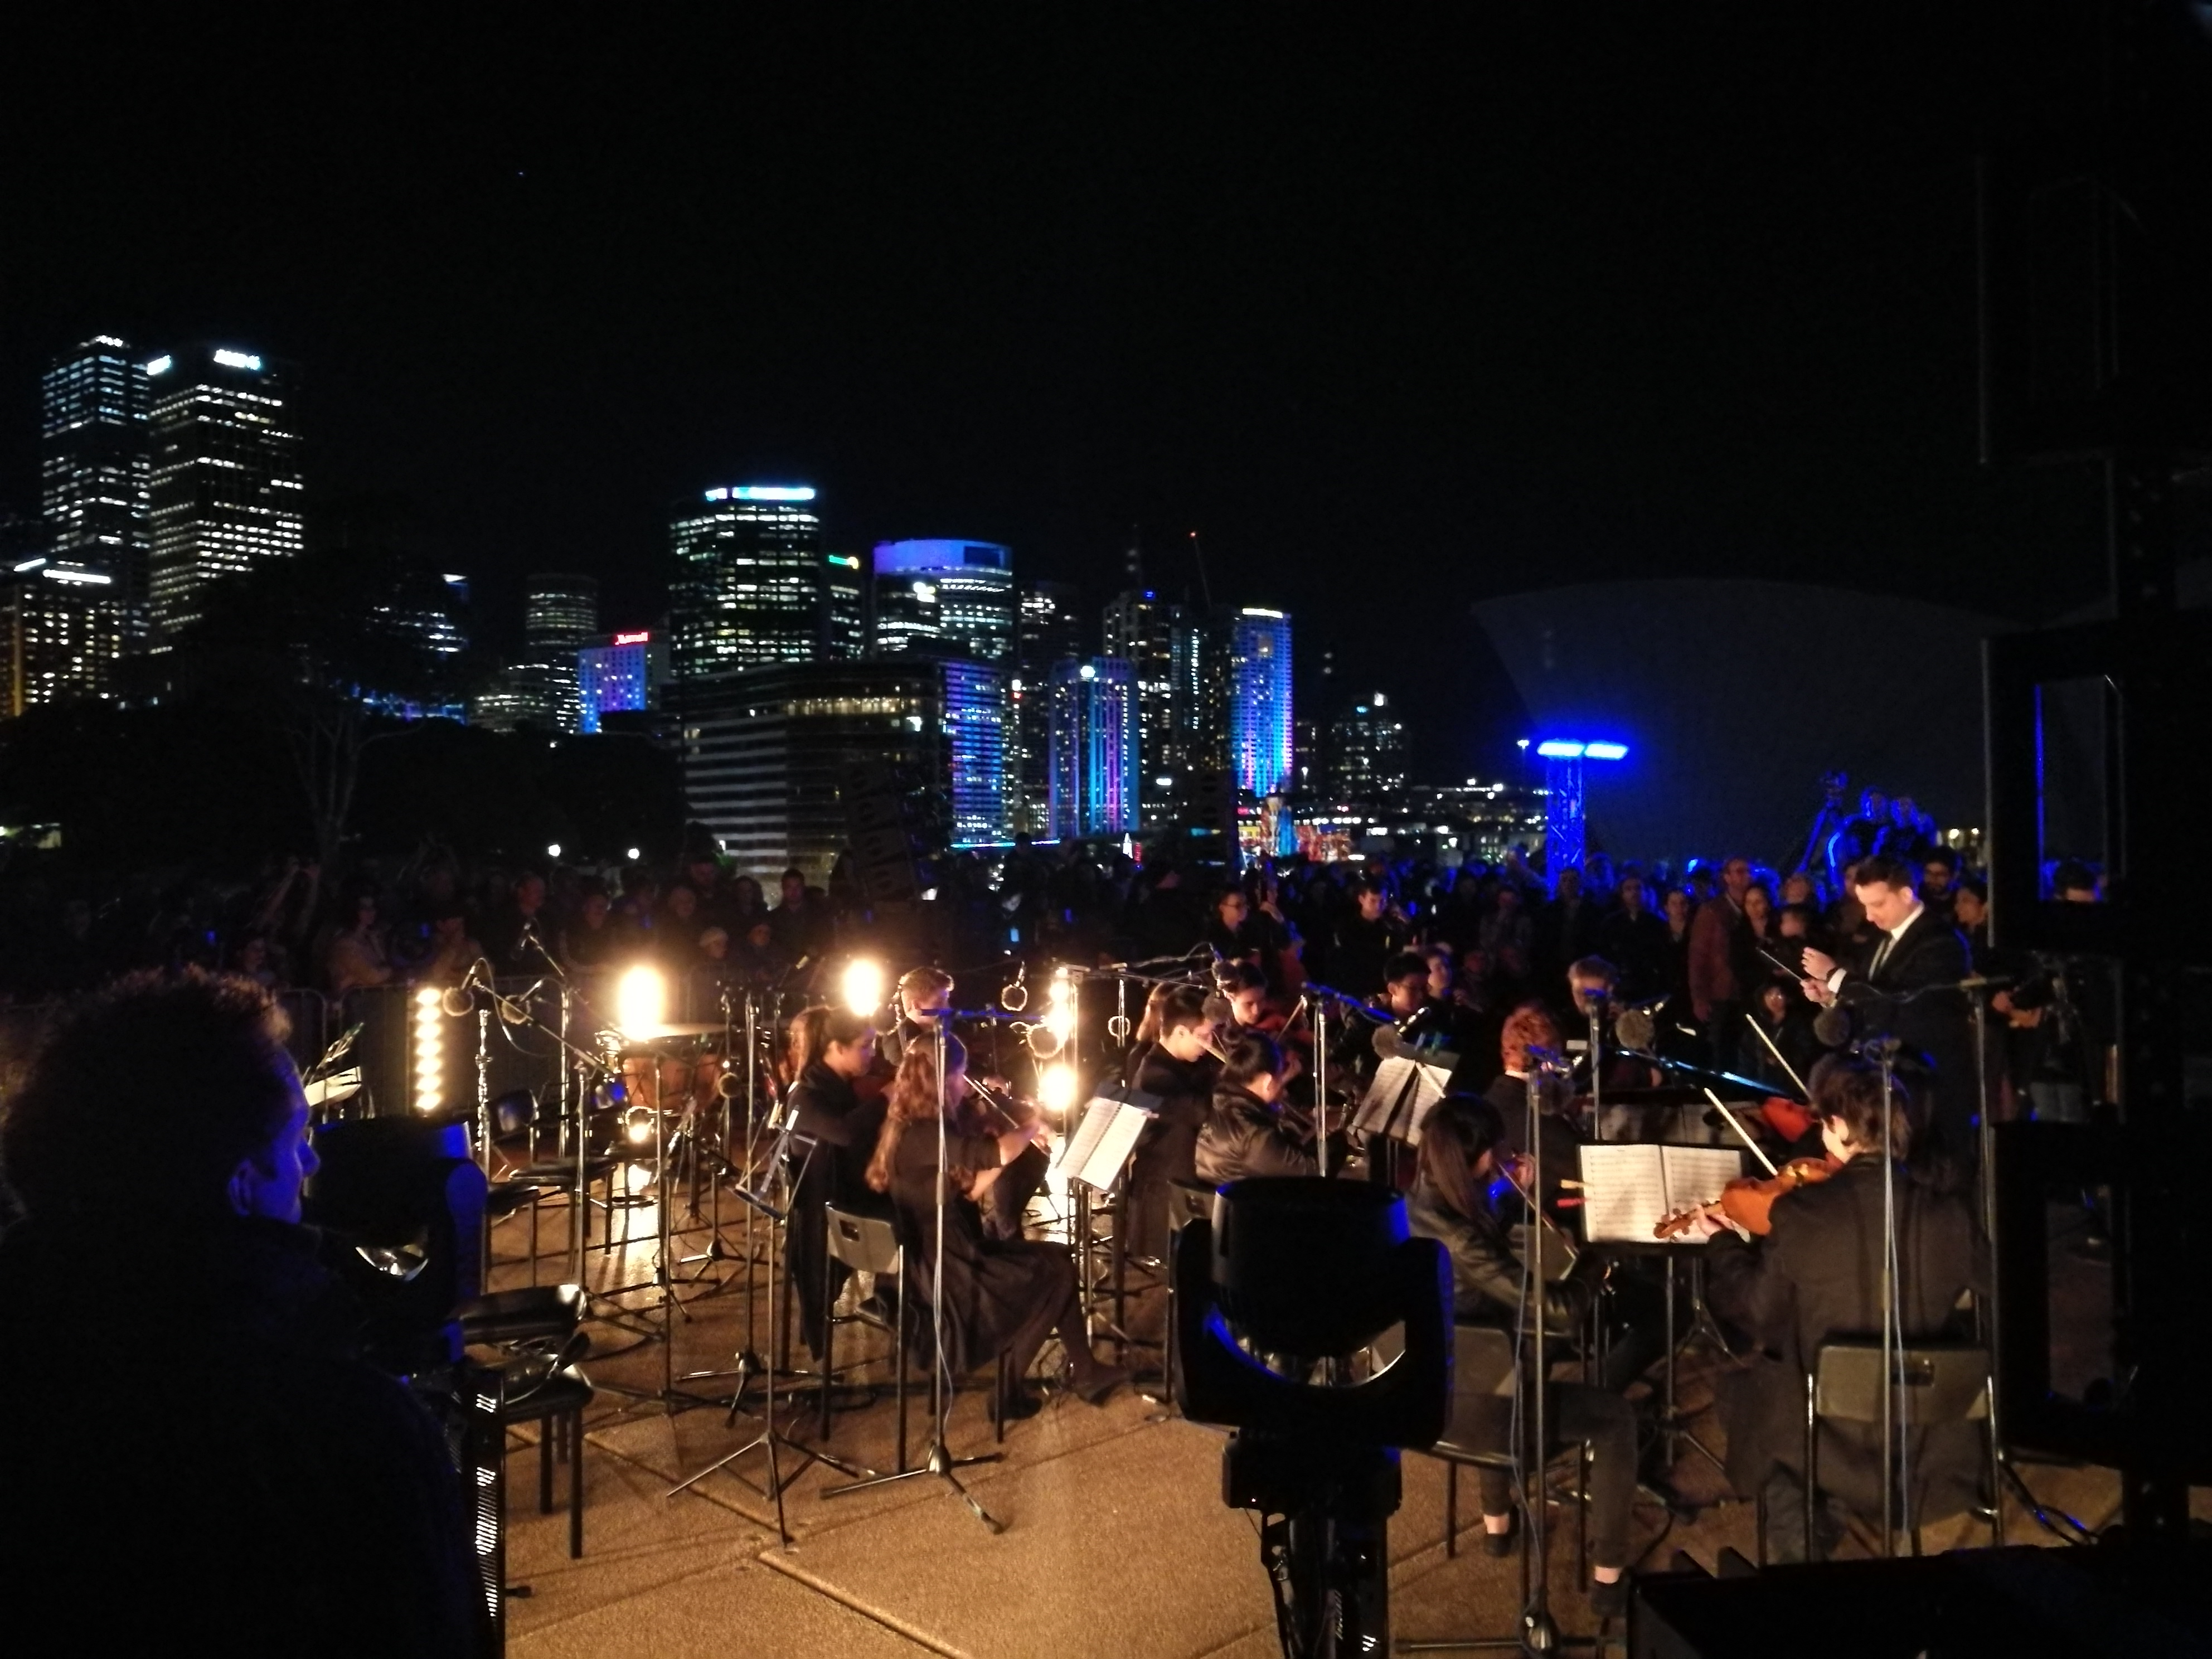 Night shot, taken at the Opera House of the Orchestra